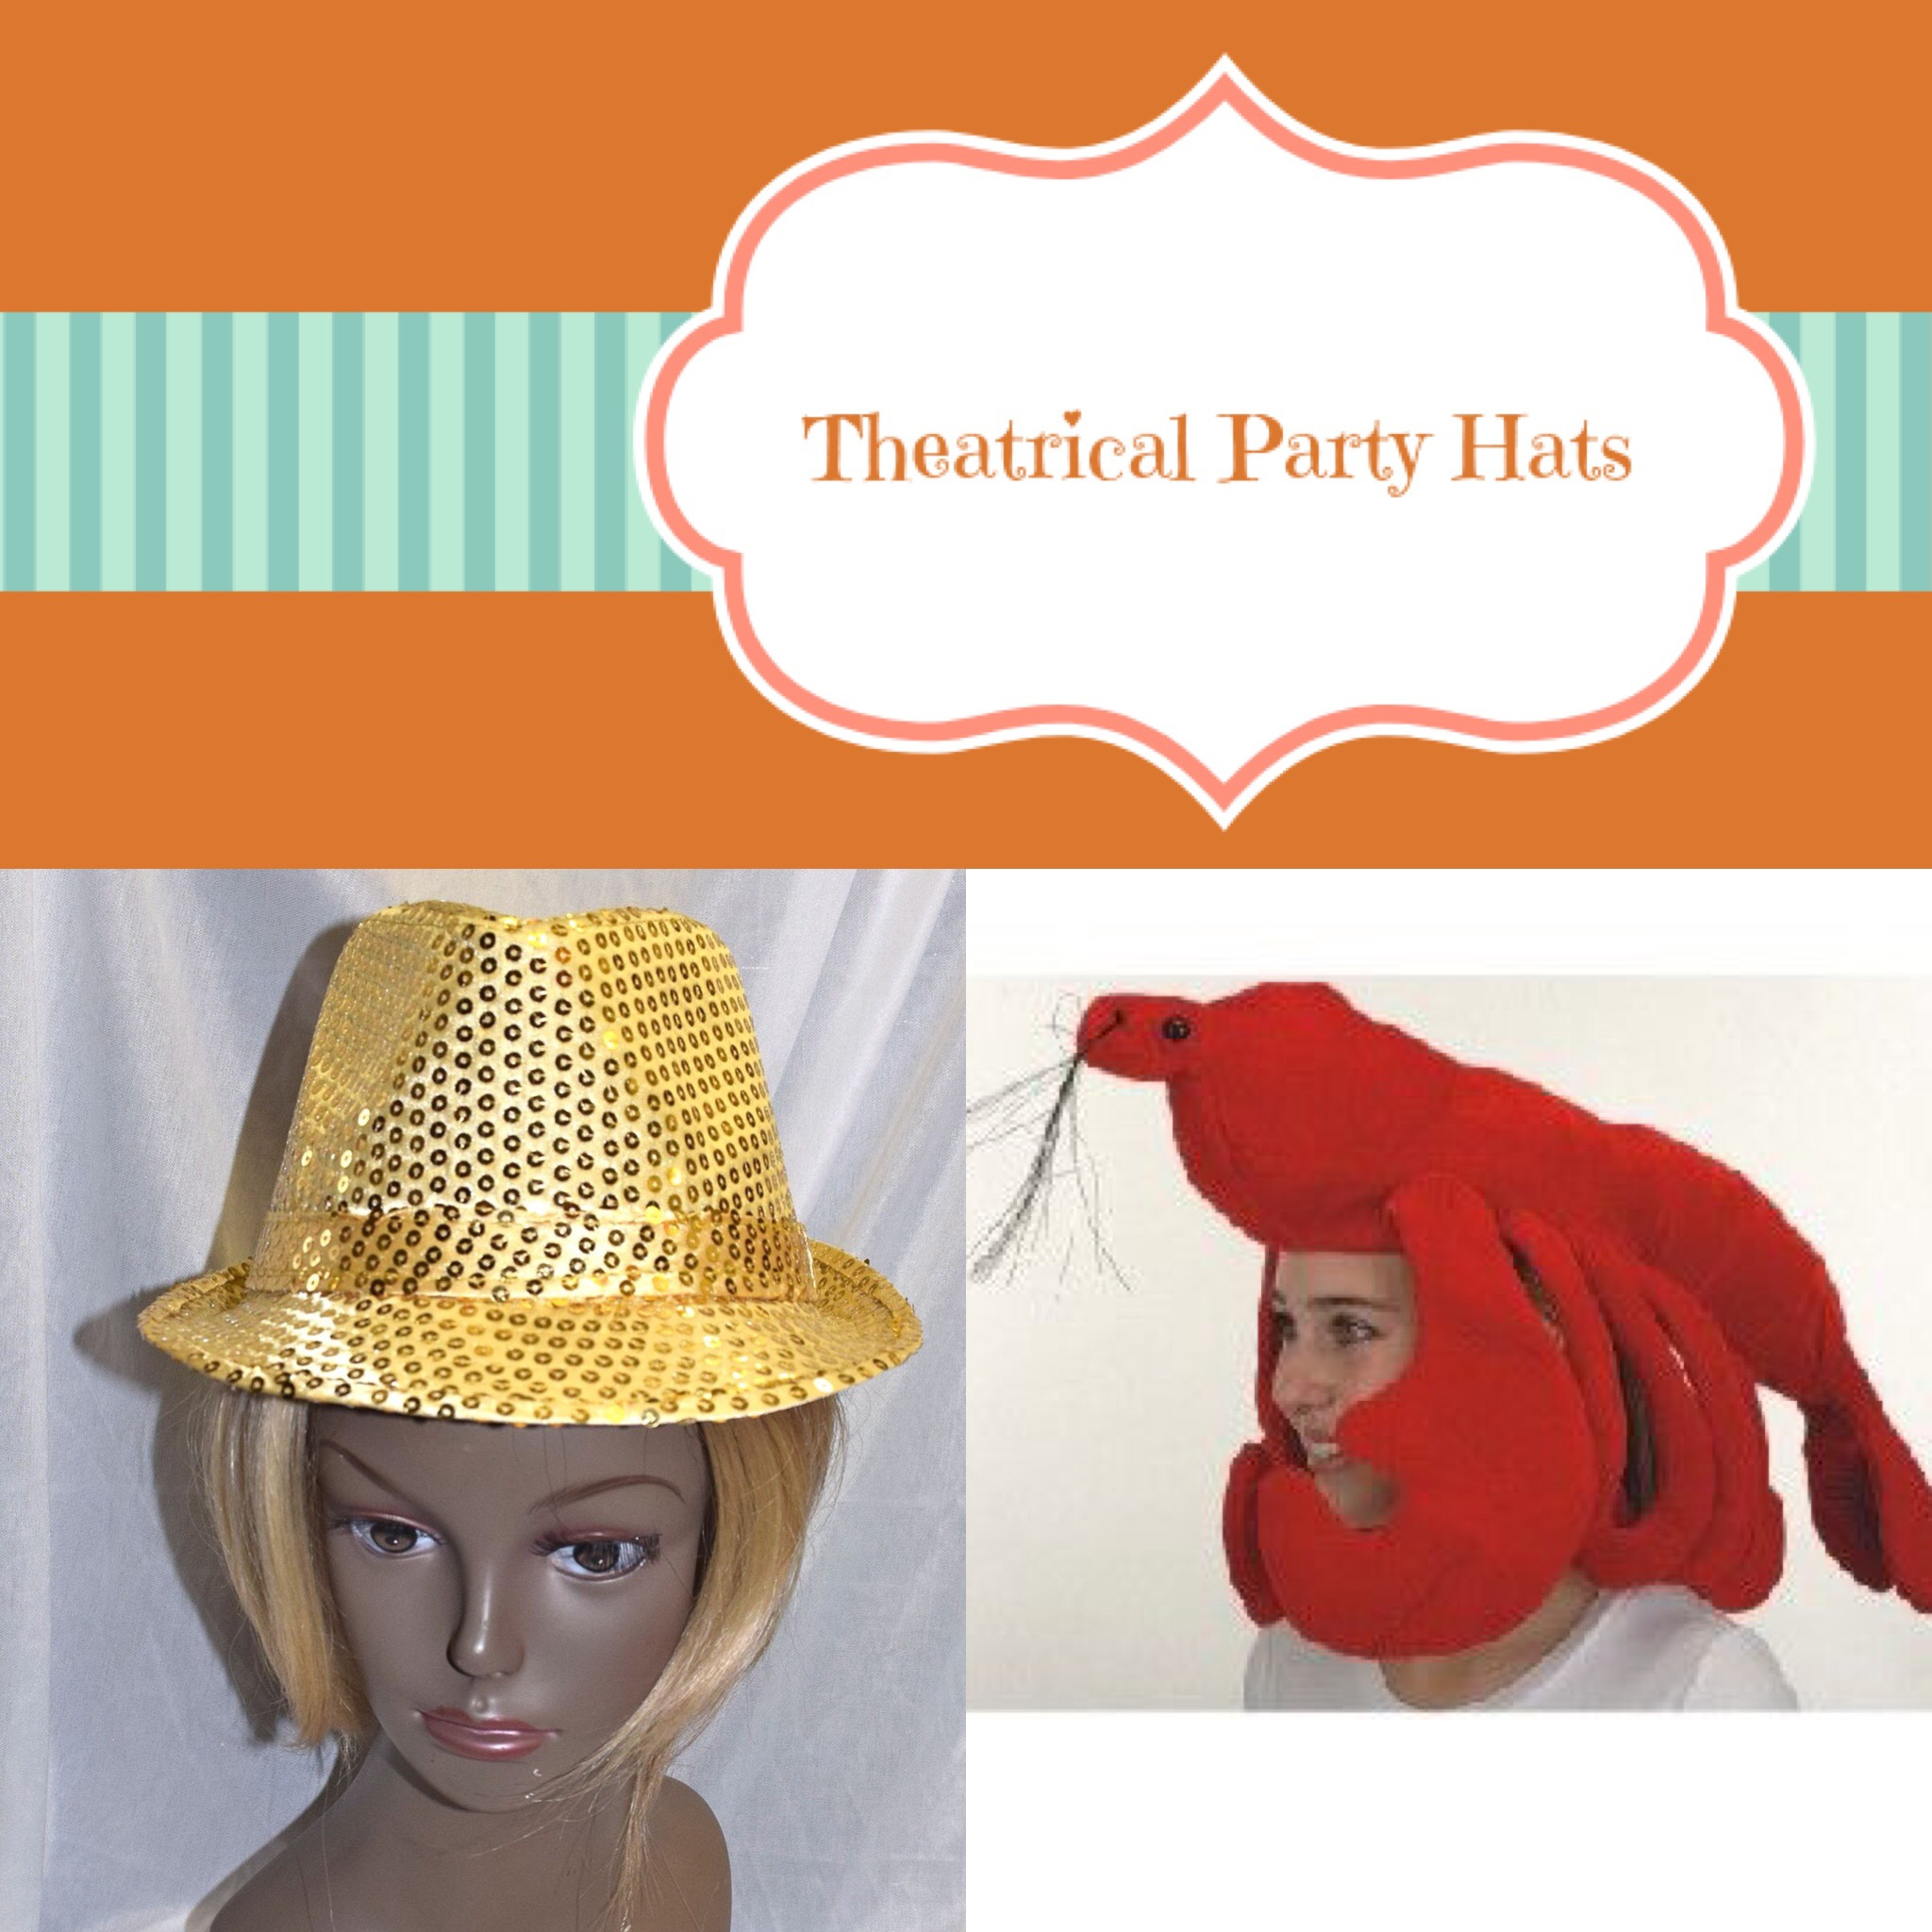 Theatrical Party Hats